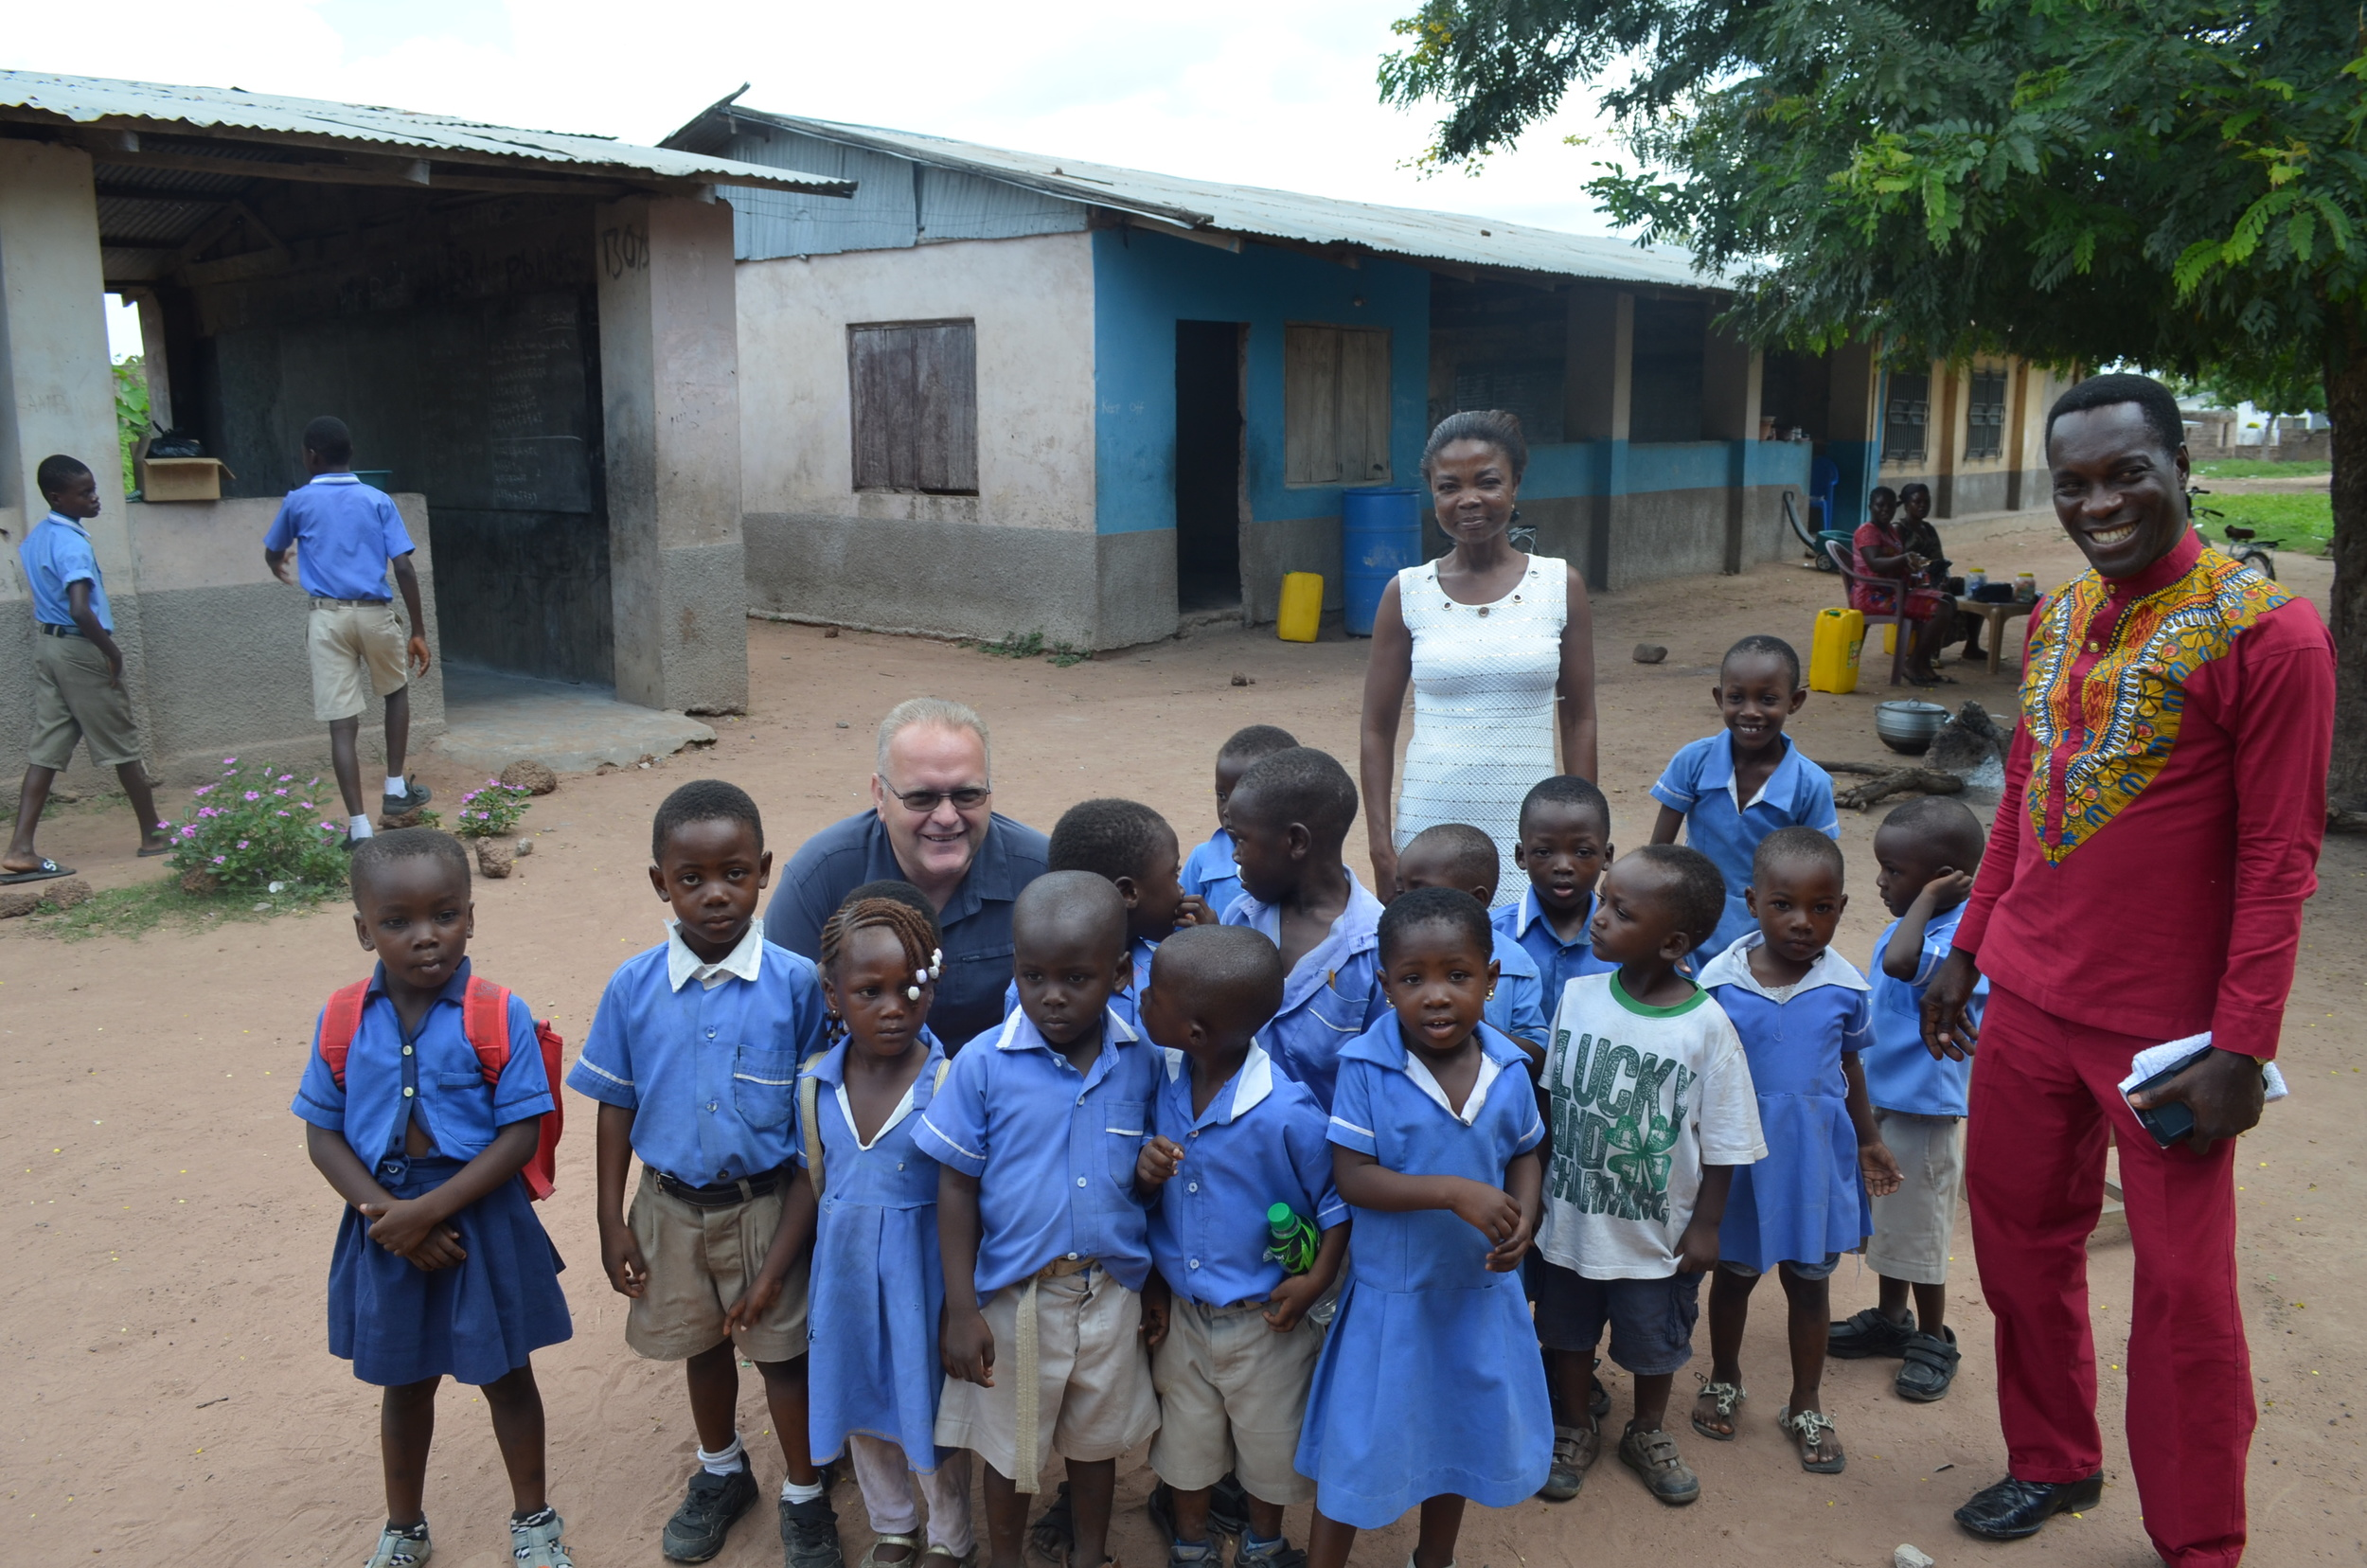 Brother Paul, Brother Jeff, the teacher, and an elementary school class.